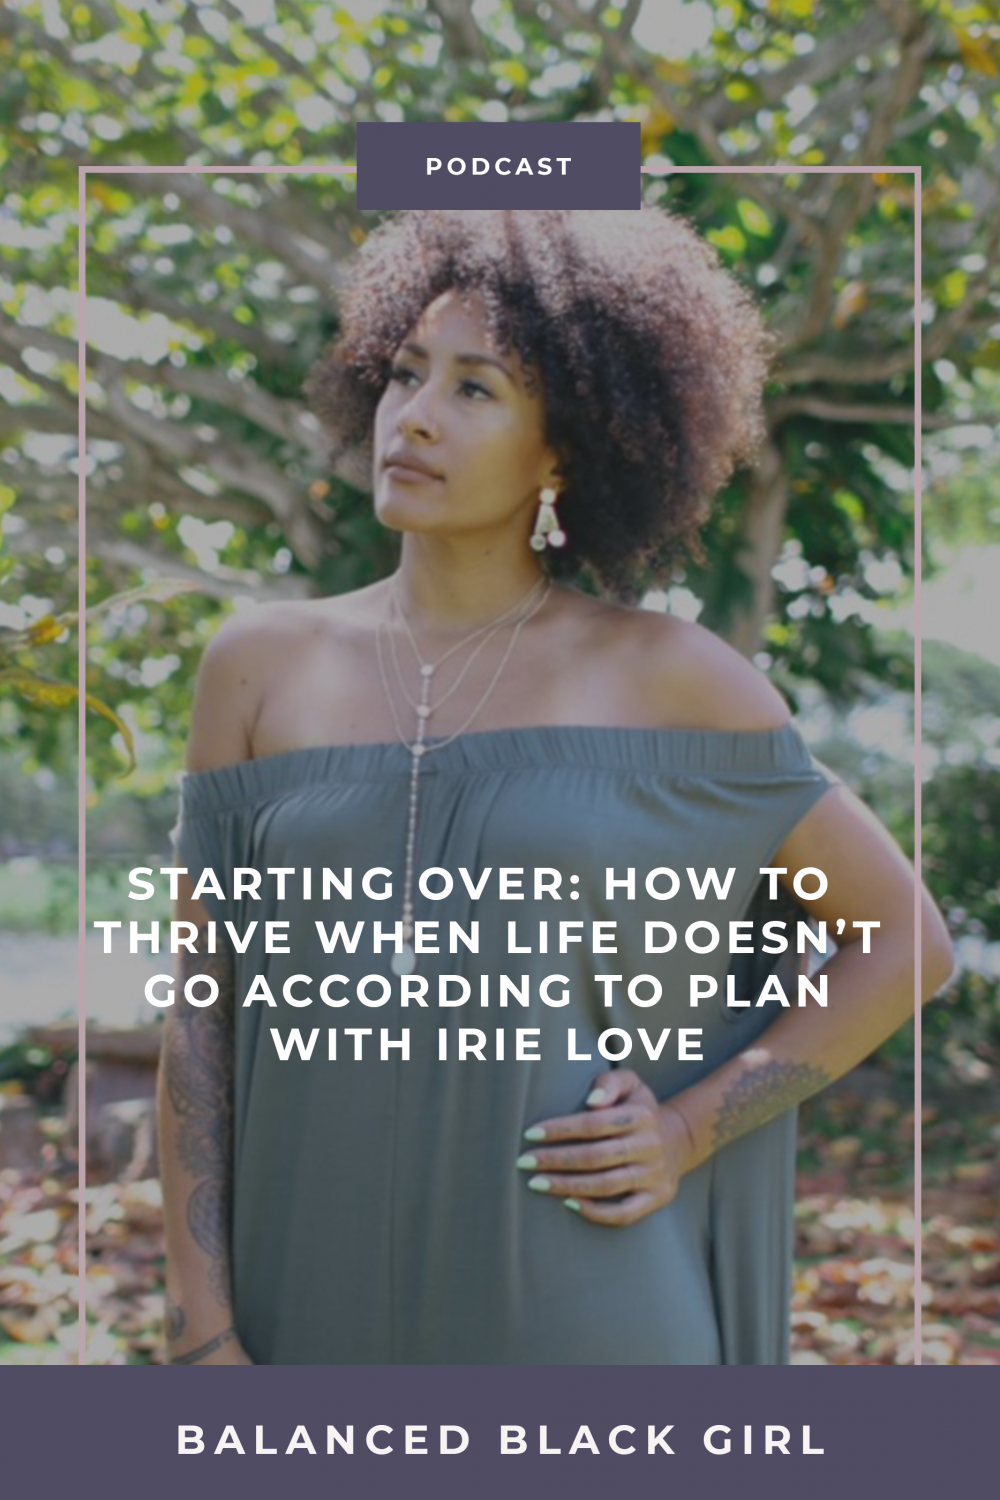 Episode 27: Starting Over – How to Thrive When Life Doesn't Go According to Plan with Irie Love